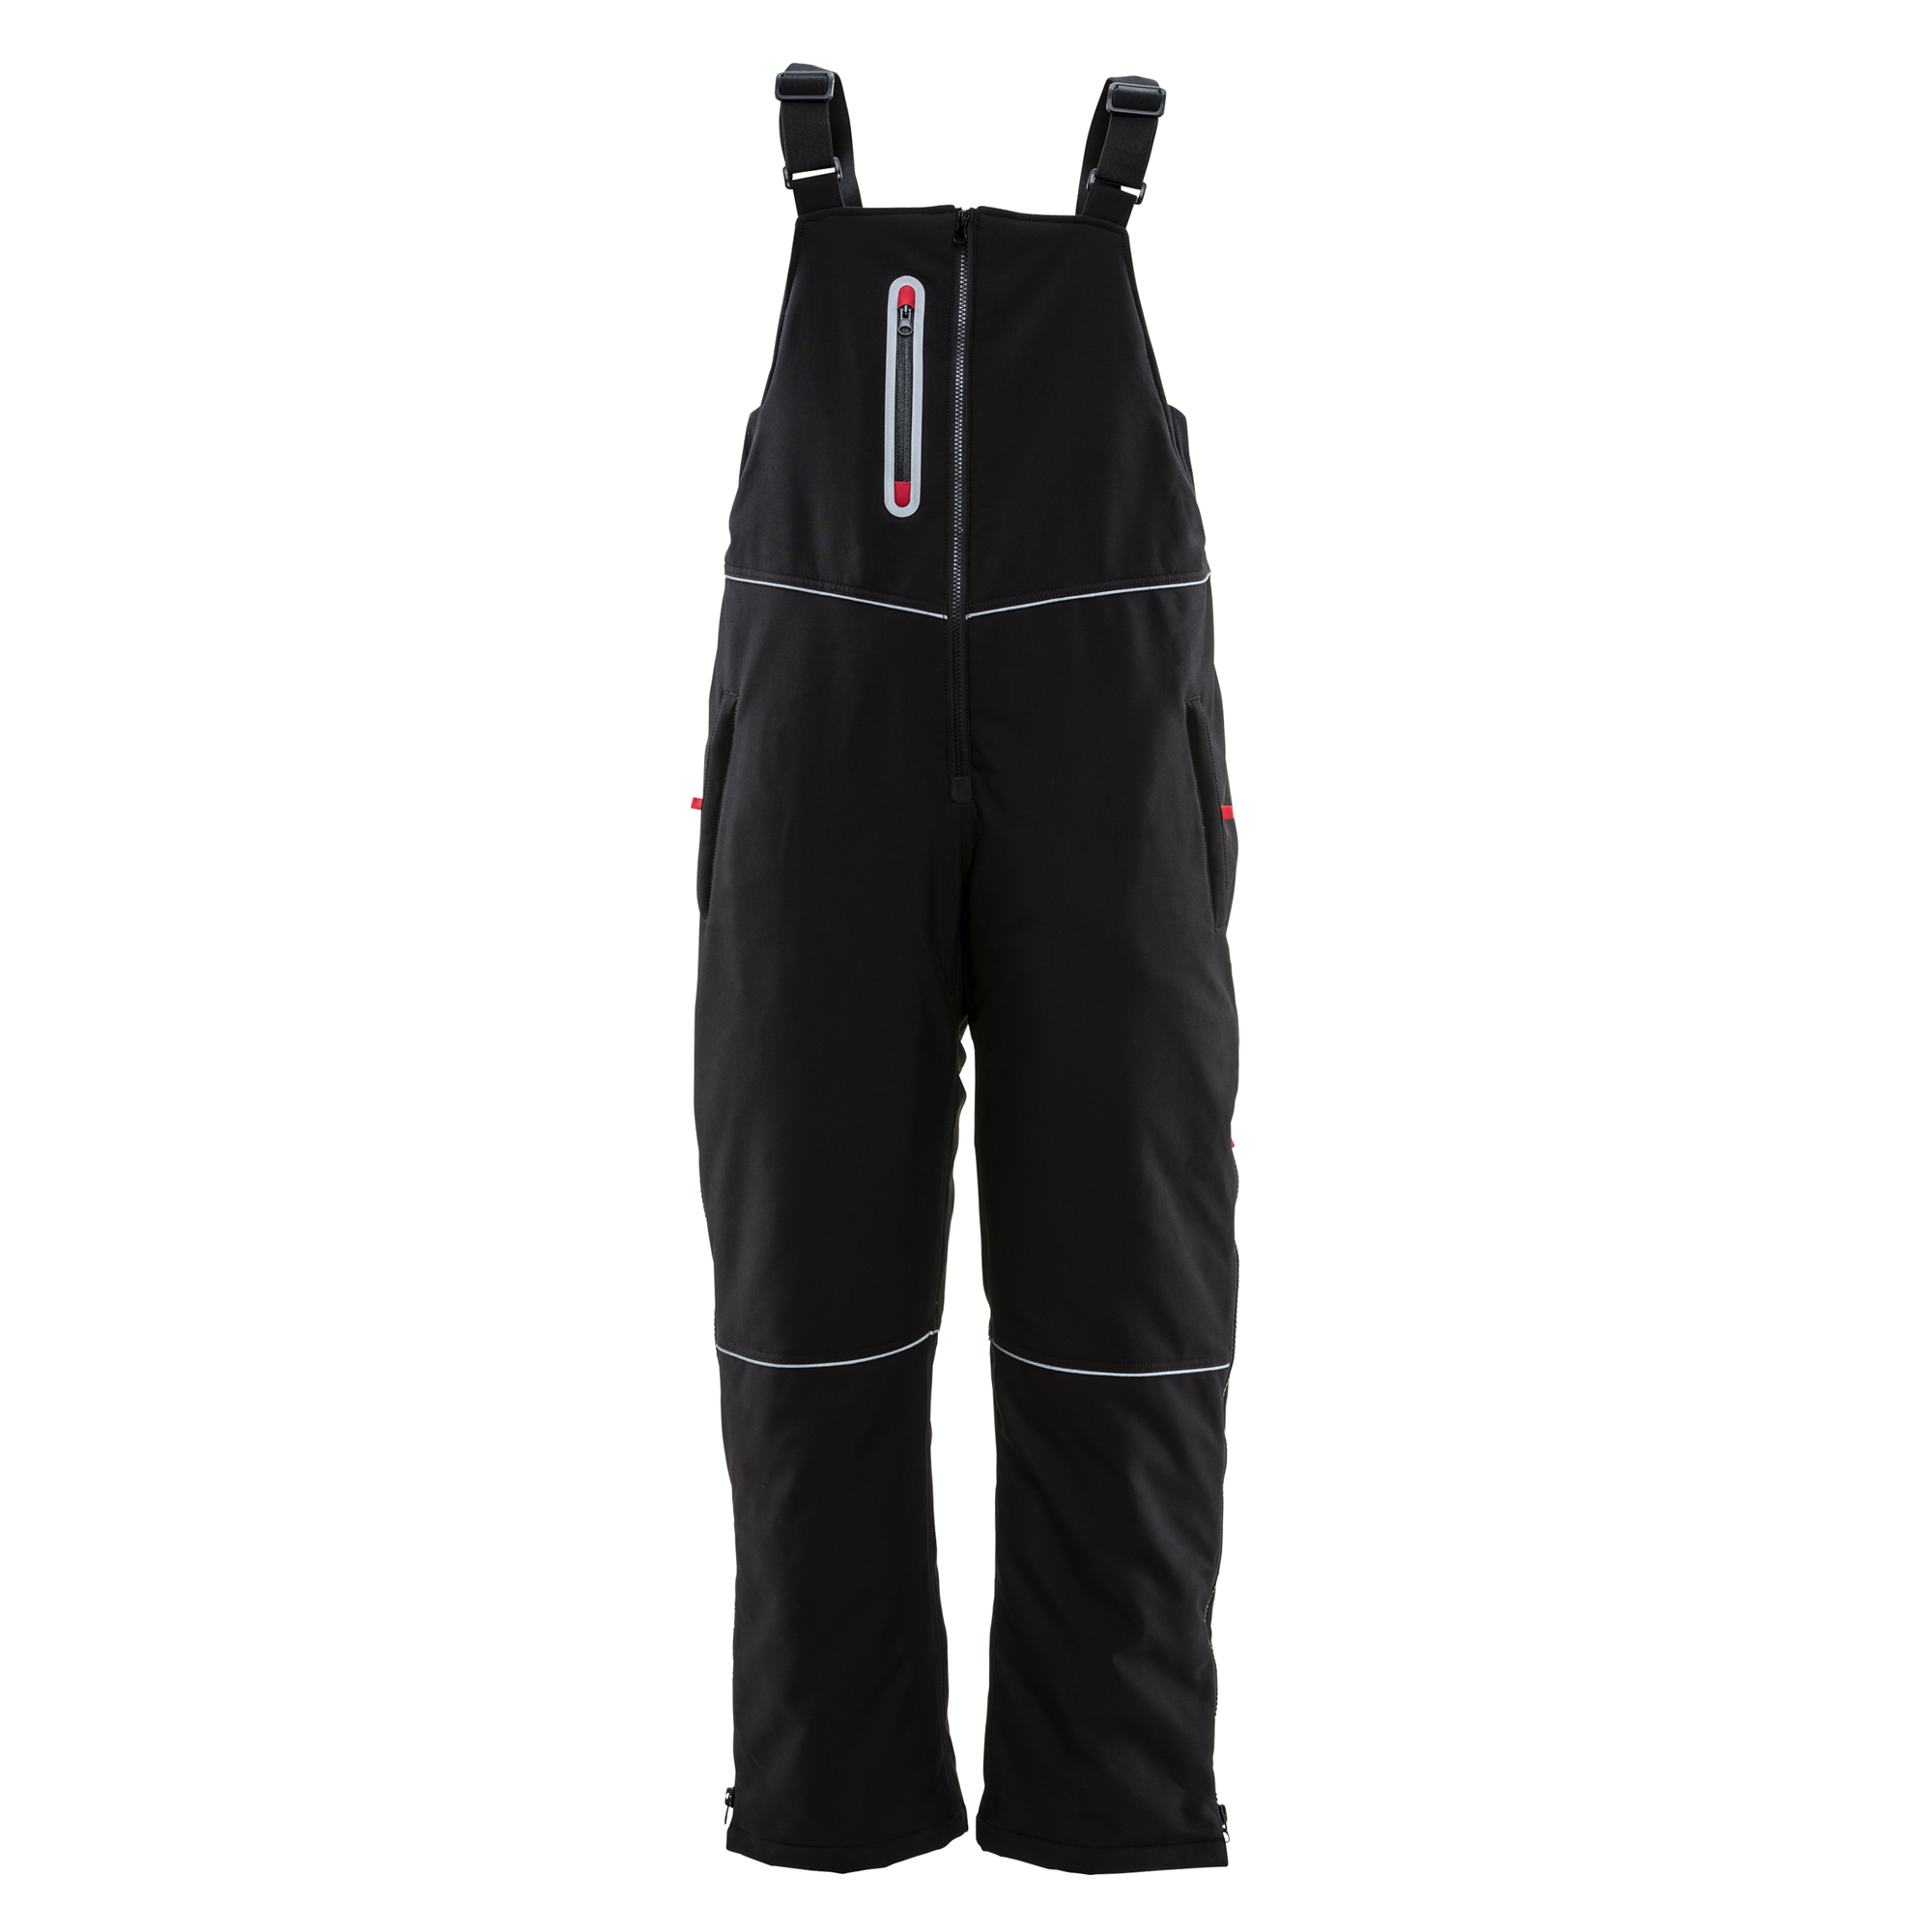 RefrigiWear Women's Insulated Softshell Bib Overalls